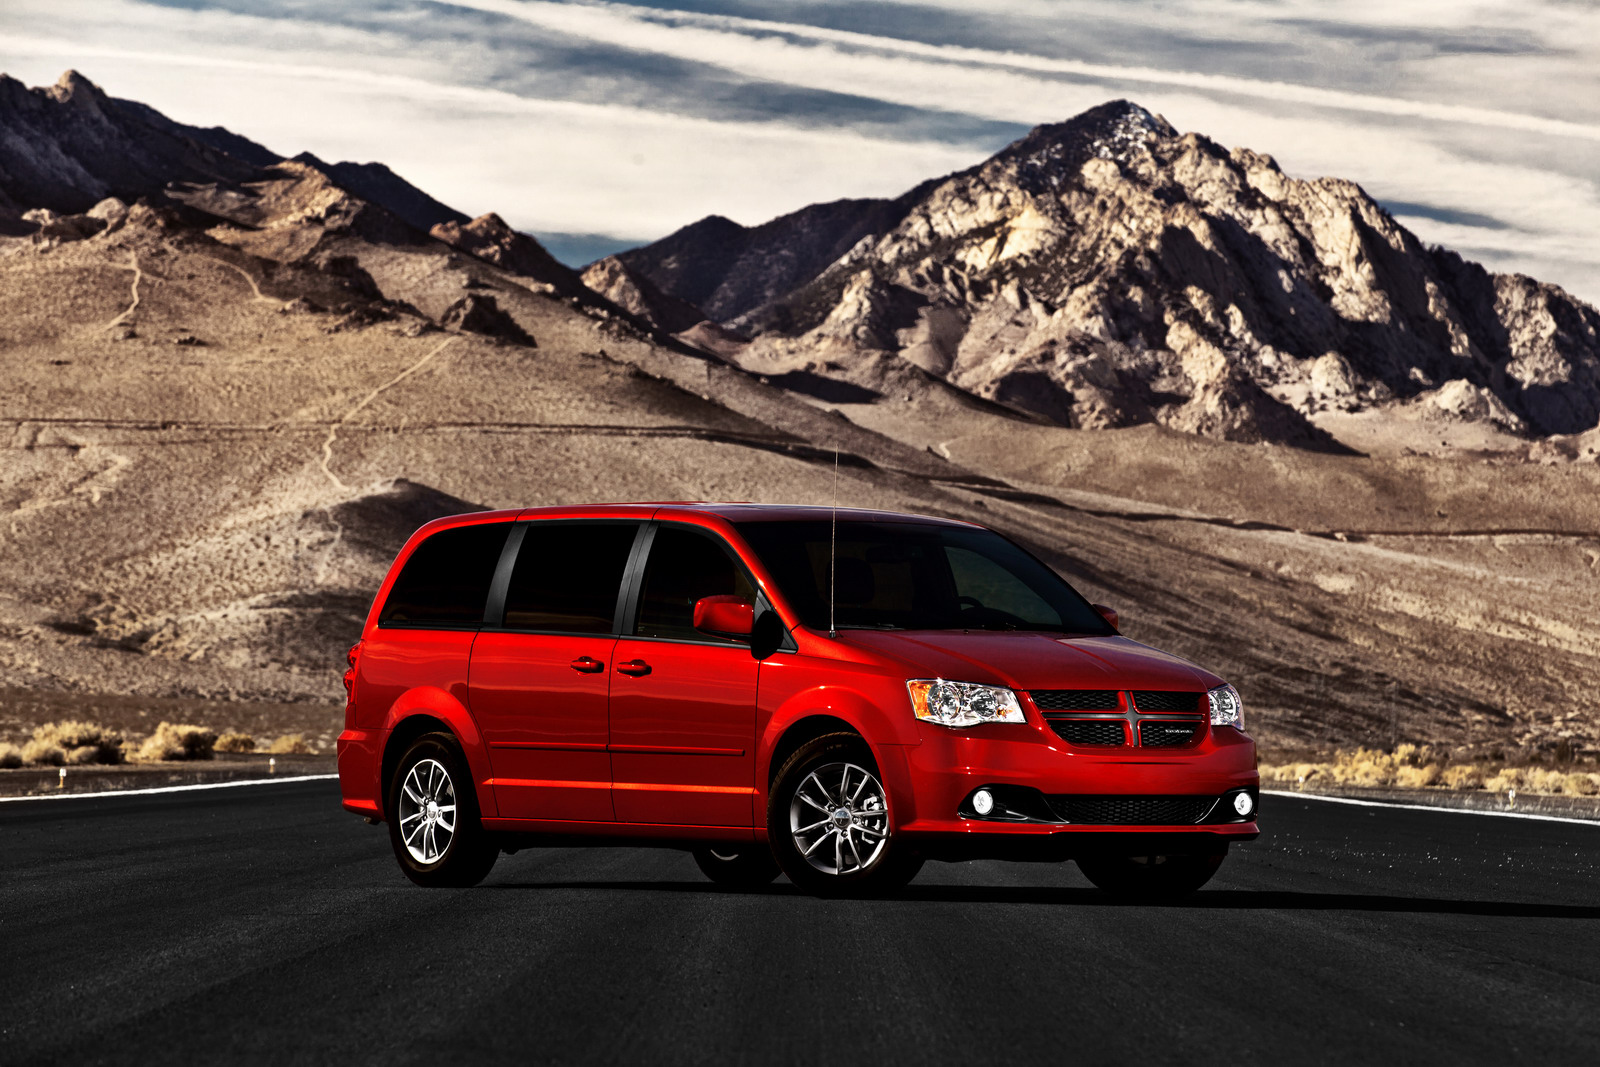 2012 chrysler town country dodge caravan recall. Black Bedroom Furniture Sets. Home Design Ideas